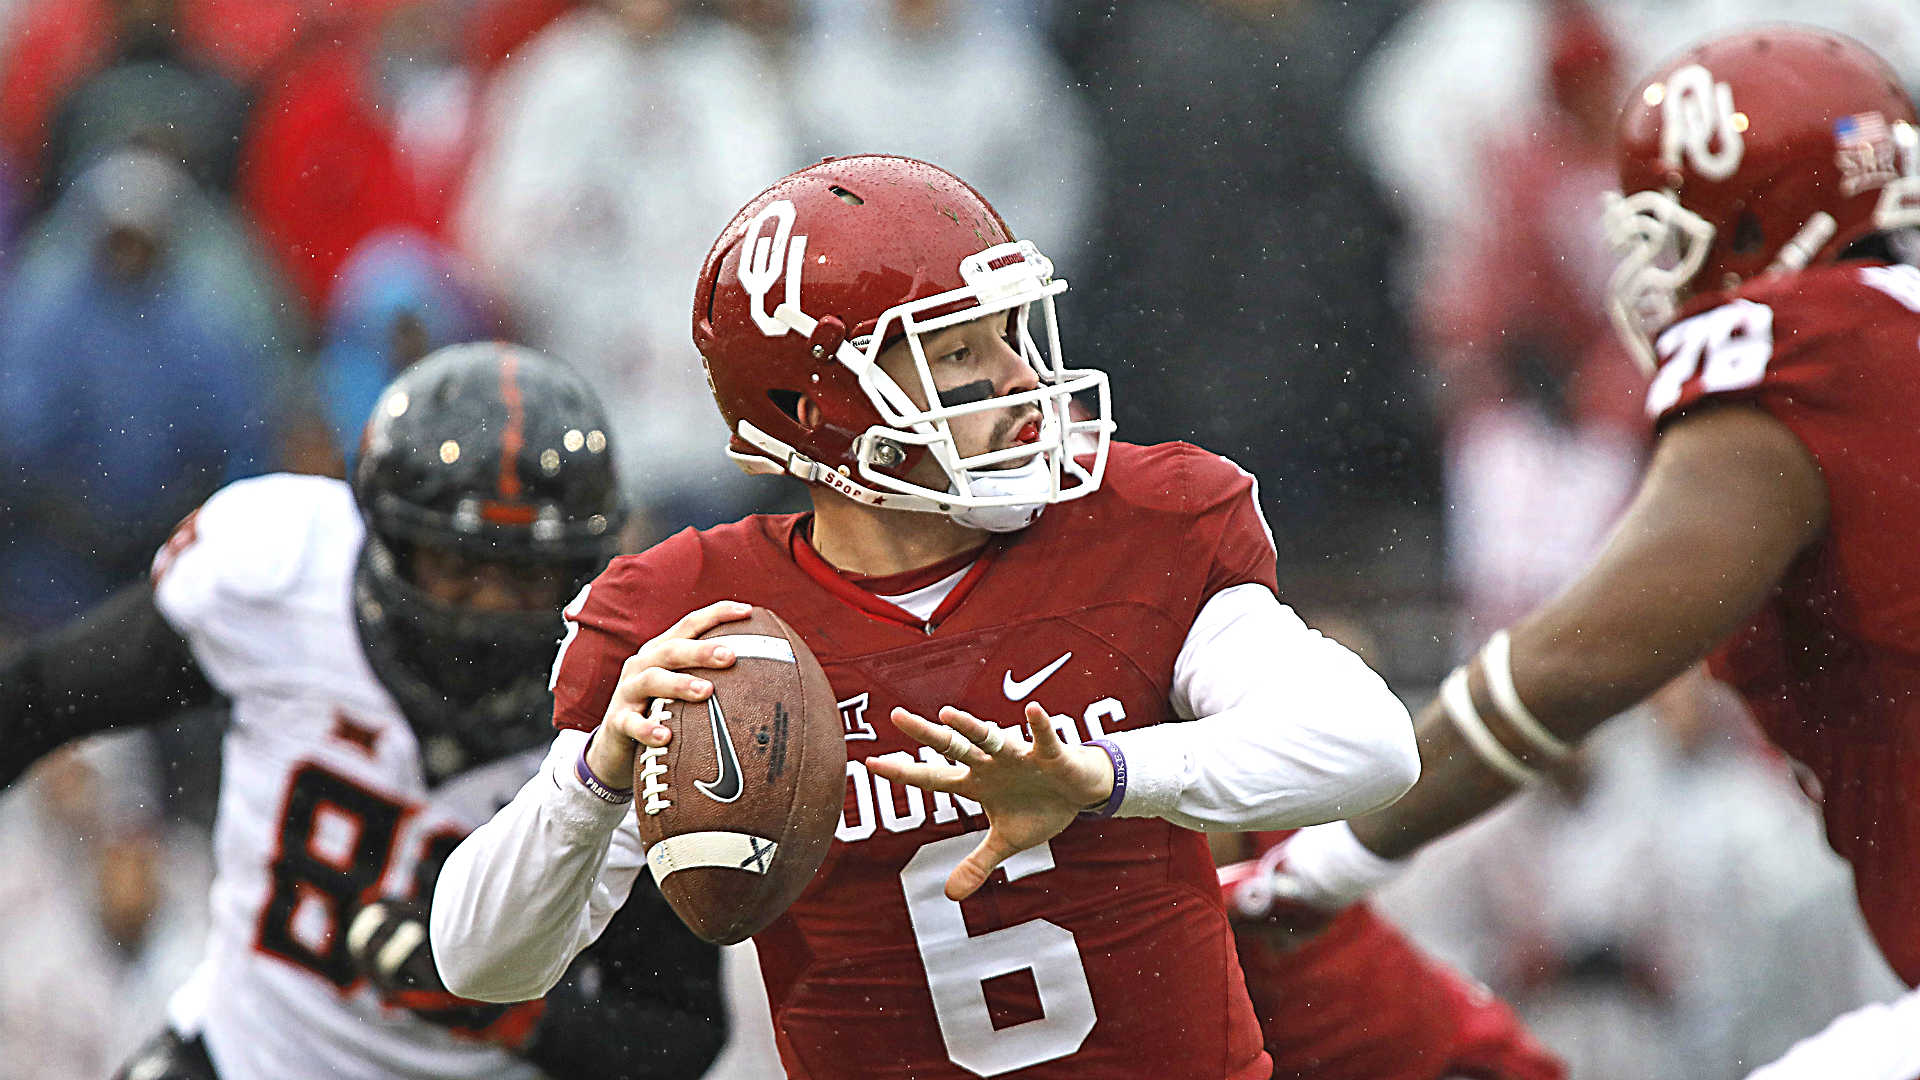 Bedlam: Oklahoma's Baker Mayfield has chance to be best Sooners QB of all time